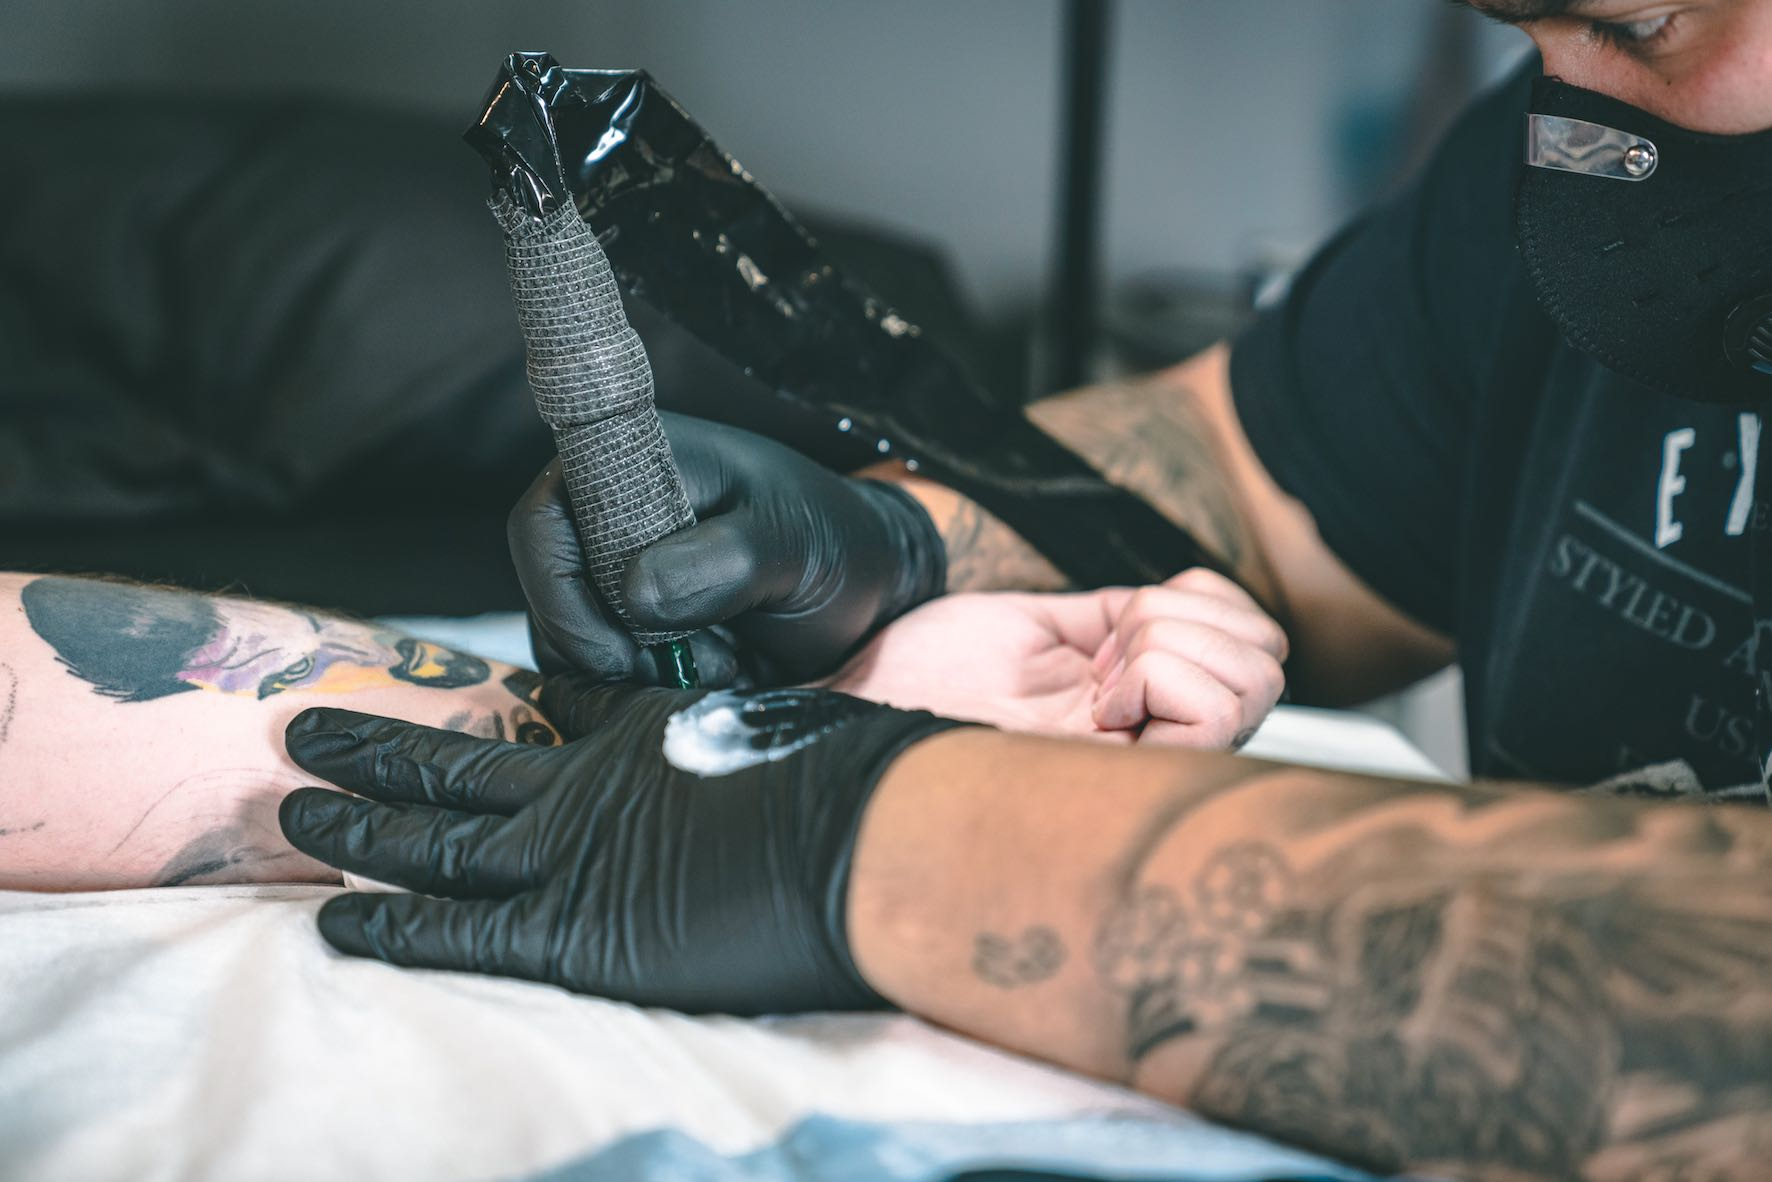 Michael Palmer tattooing a client at Heart & Hand Tattoos